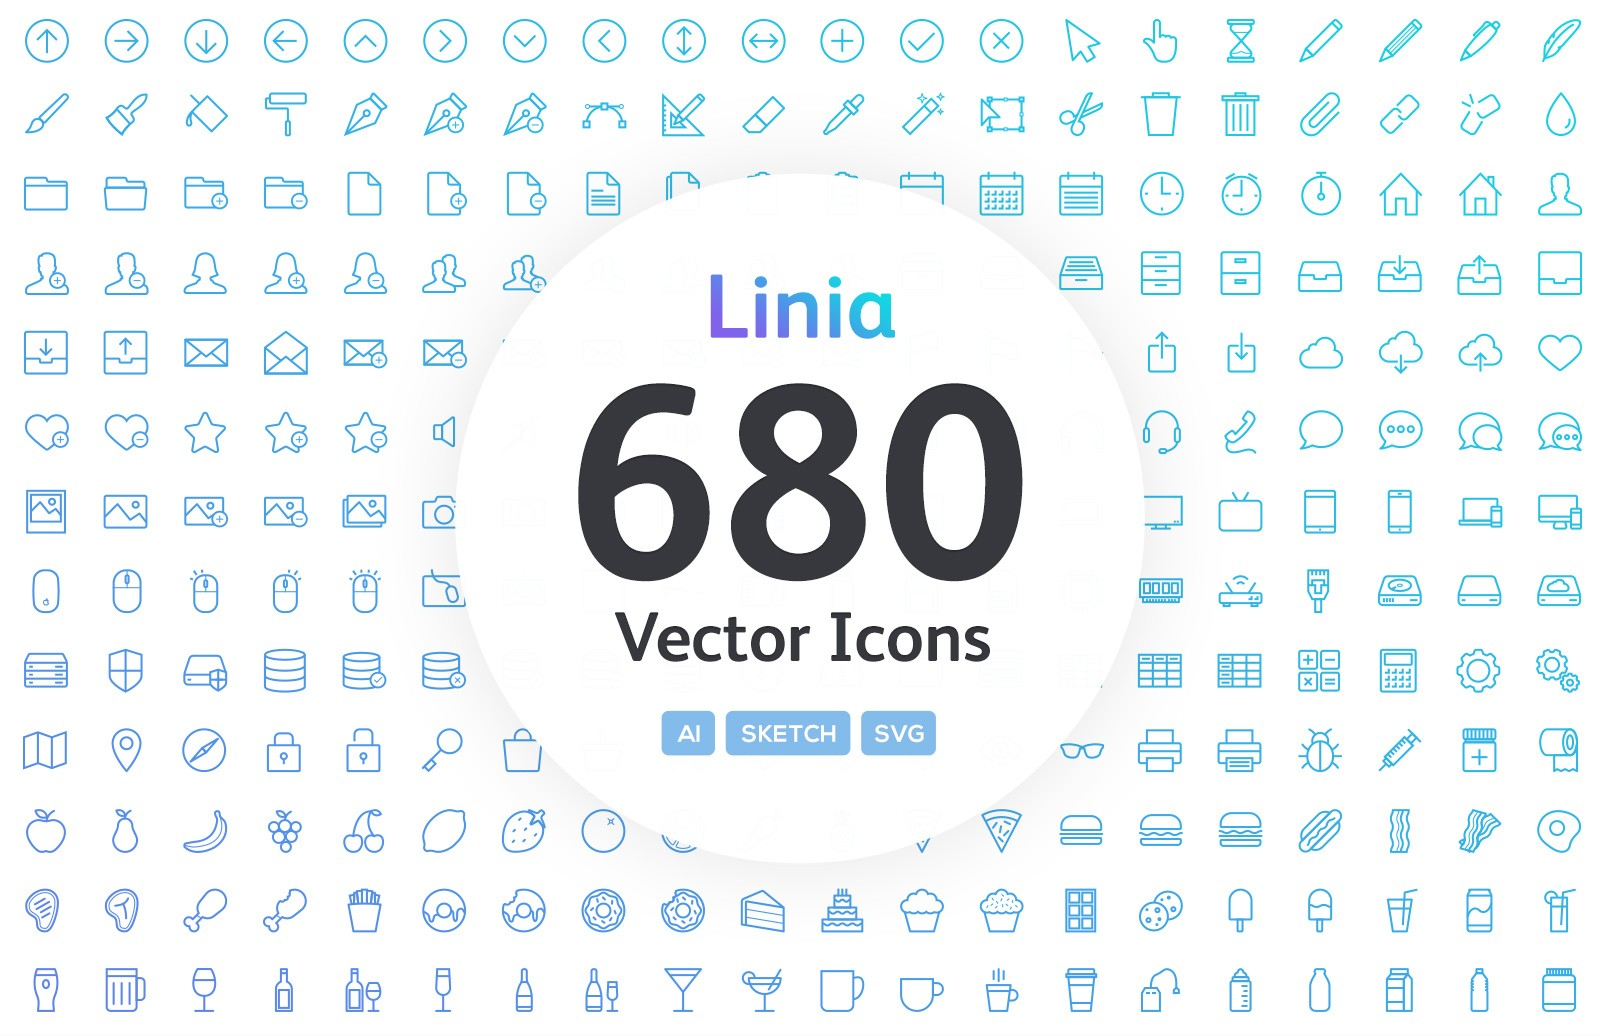 Linia - Line Vector Icons 1